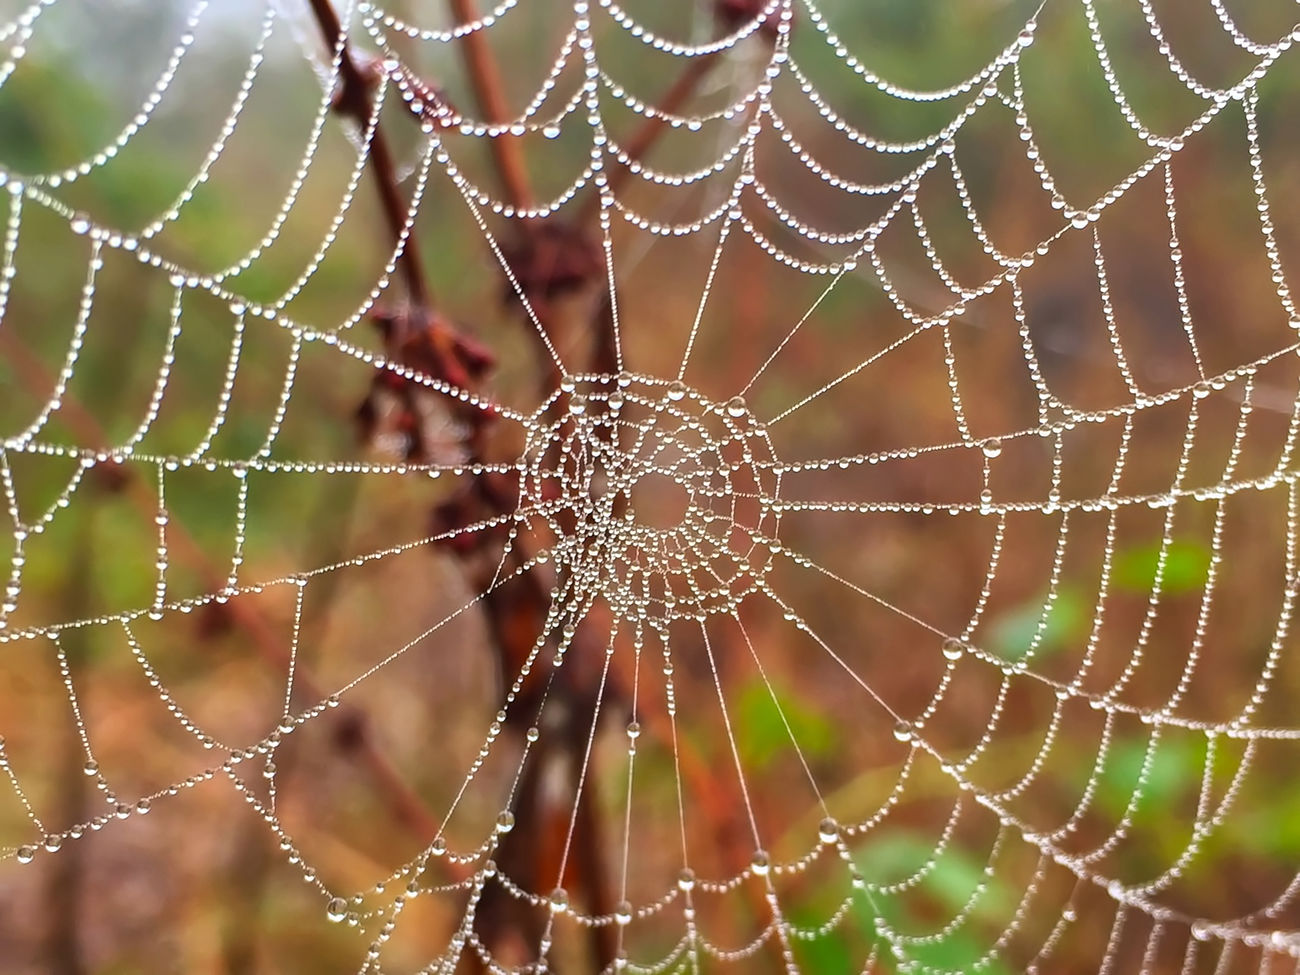 Spiders Web with morning dew Animal Leg Animal Themes Animal Wildlife Animals In The Wild Backgrounds Beauty In Nature Close-up Complexity Day Focus On Foreground Fragility Insect Intricacy Nature No People One Animal Outdoors Spider Spider Web Spinning Survival Weaving Web